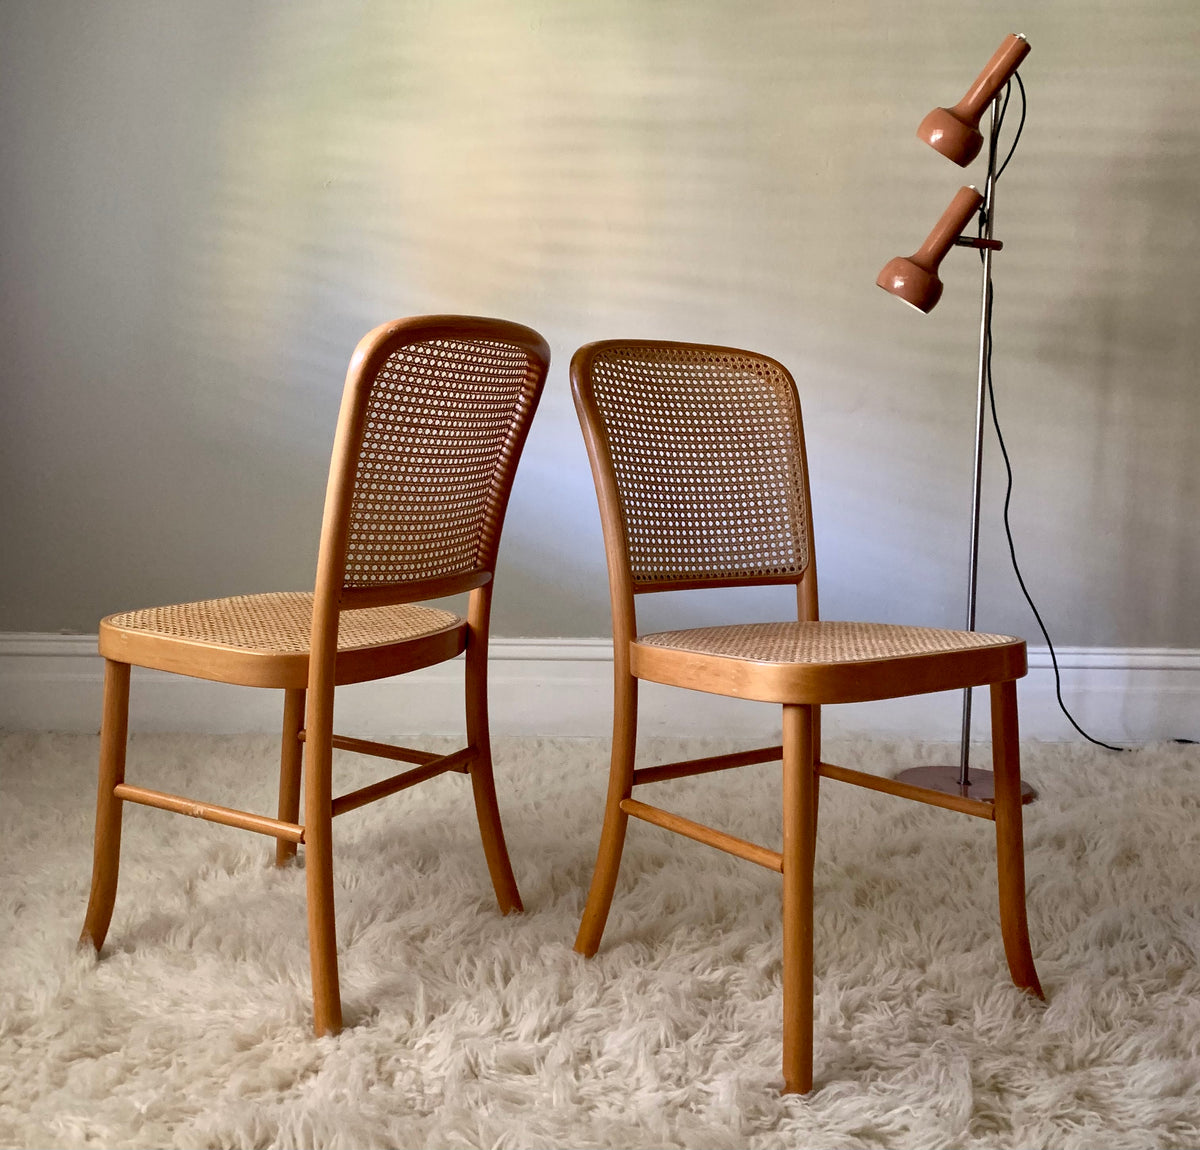 Pair of Bentwood Josef Hoffmann-Style Dining Chairs (Set)